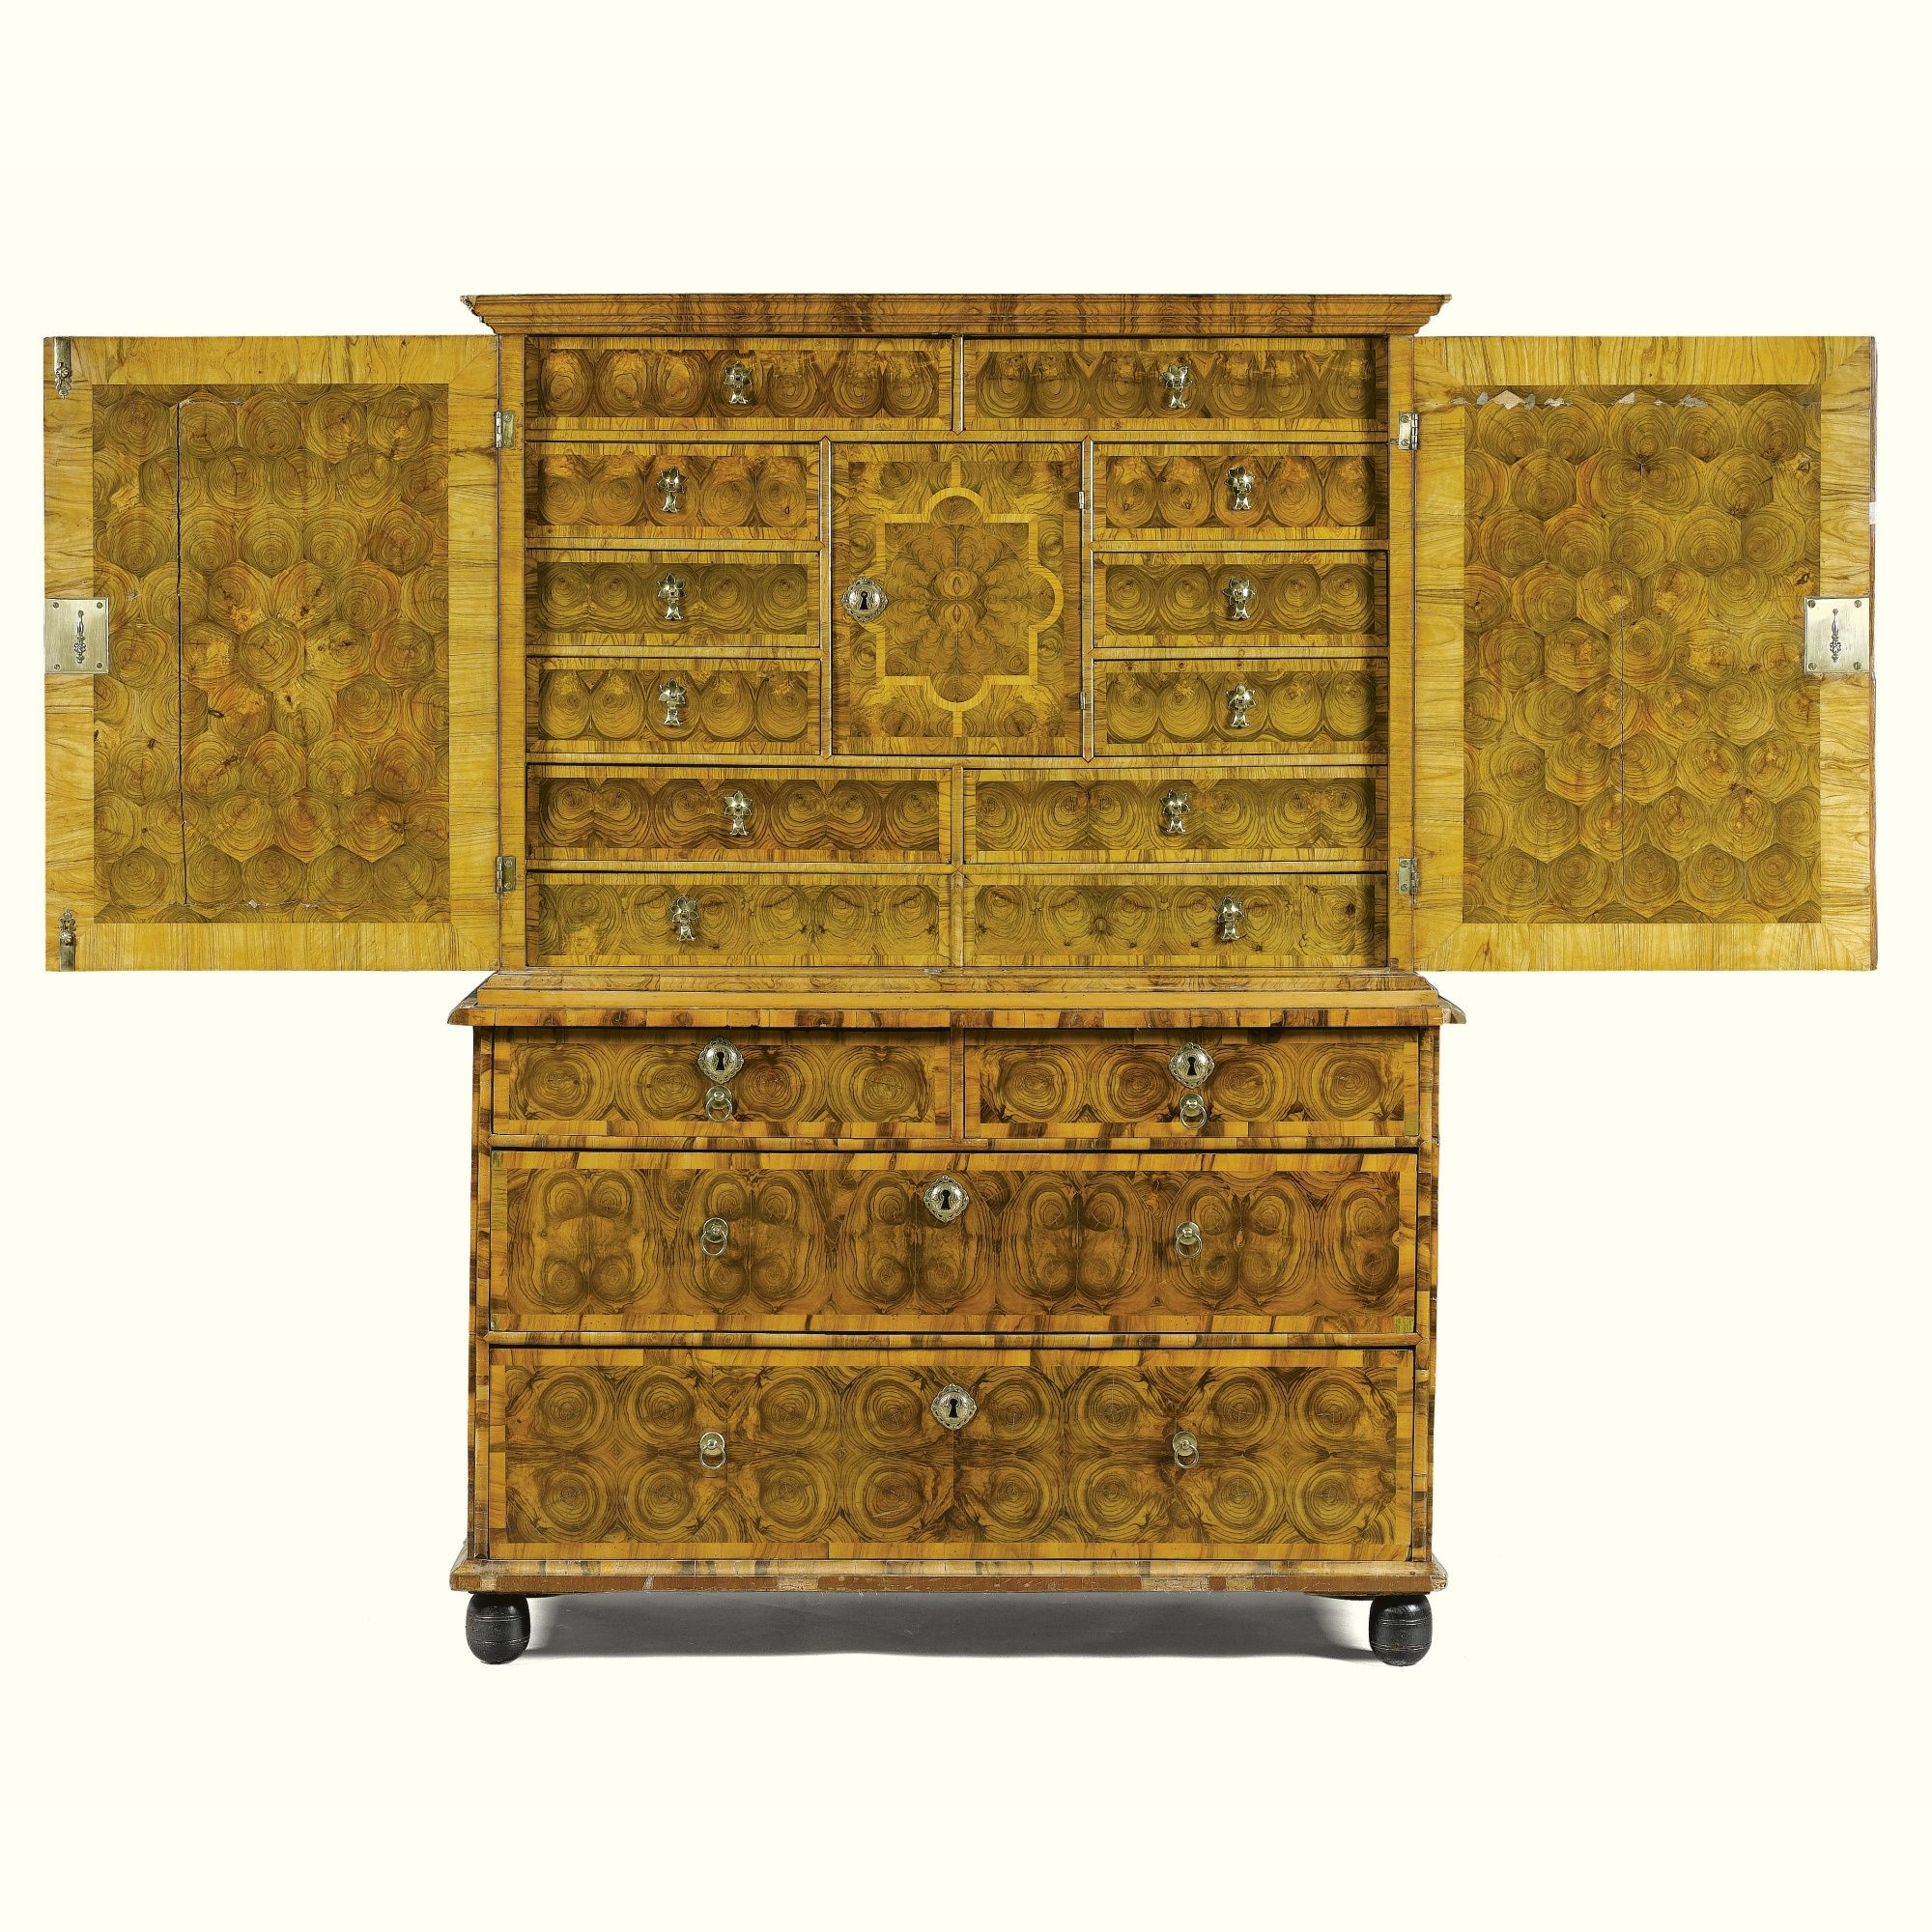 A William and Mary inlaid walnut cabinet on chest<br>circa 1695, attributed to Gerrit Jensen | lot | Sotheby's